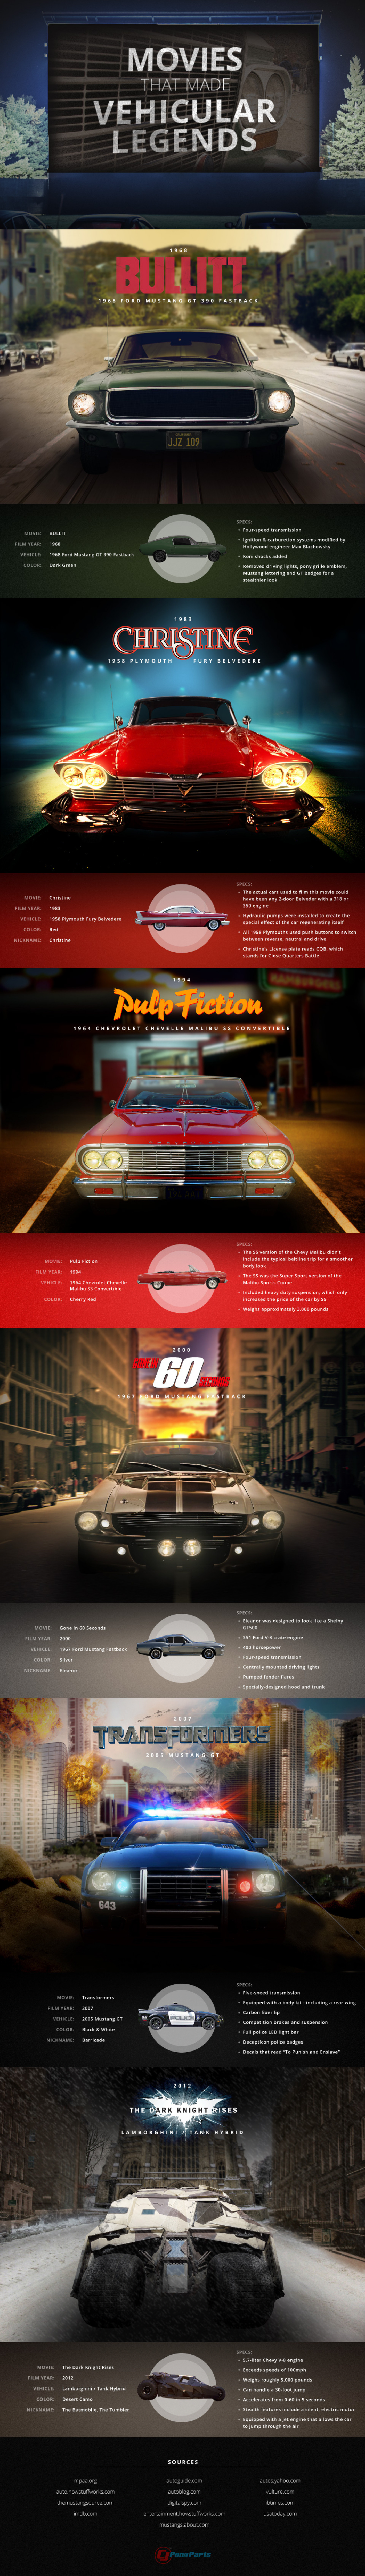 Movies That Made Vehicular Legends Infographic